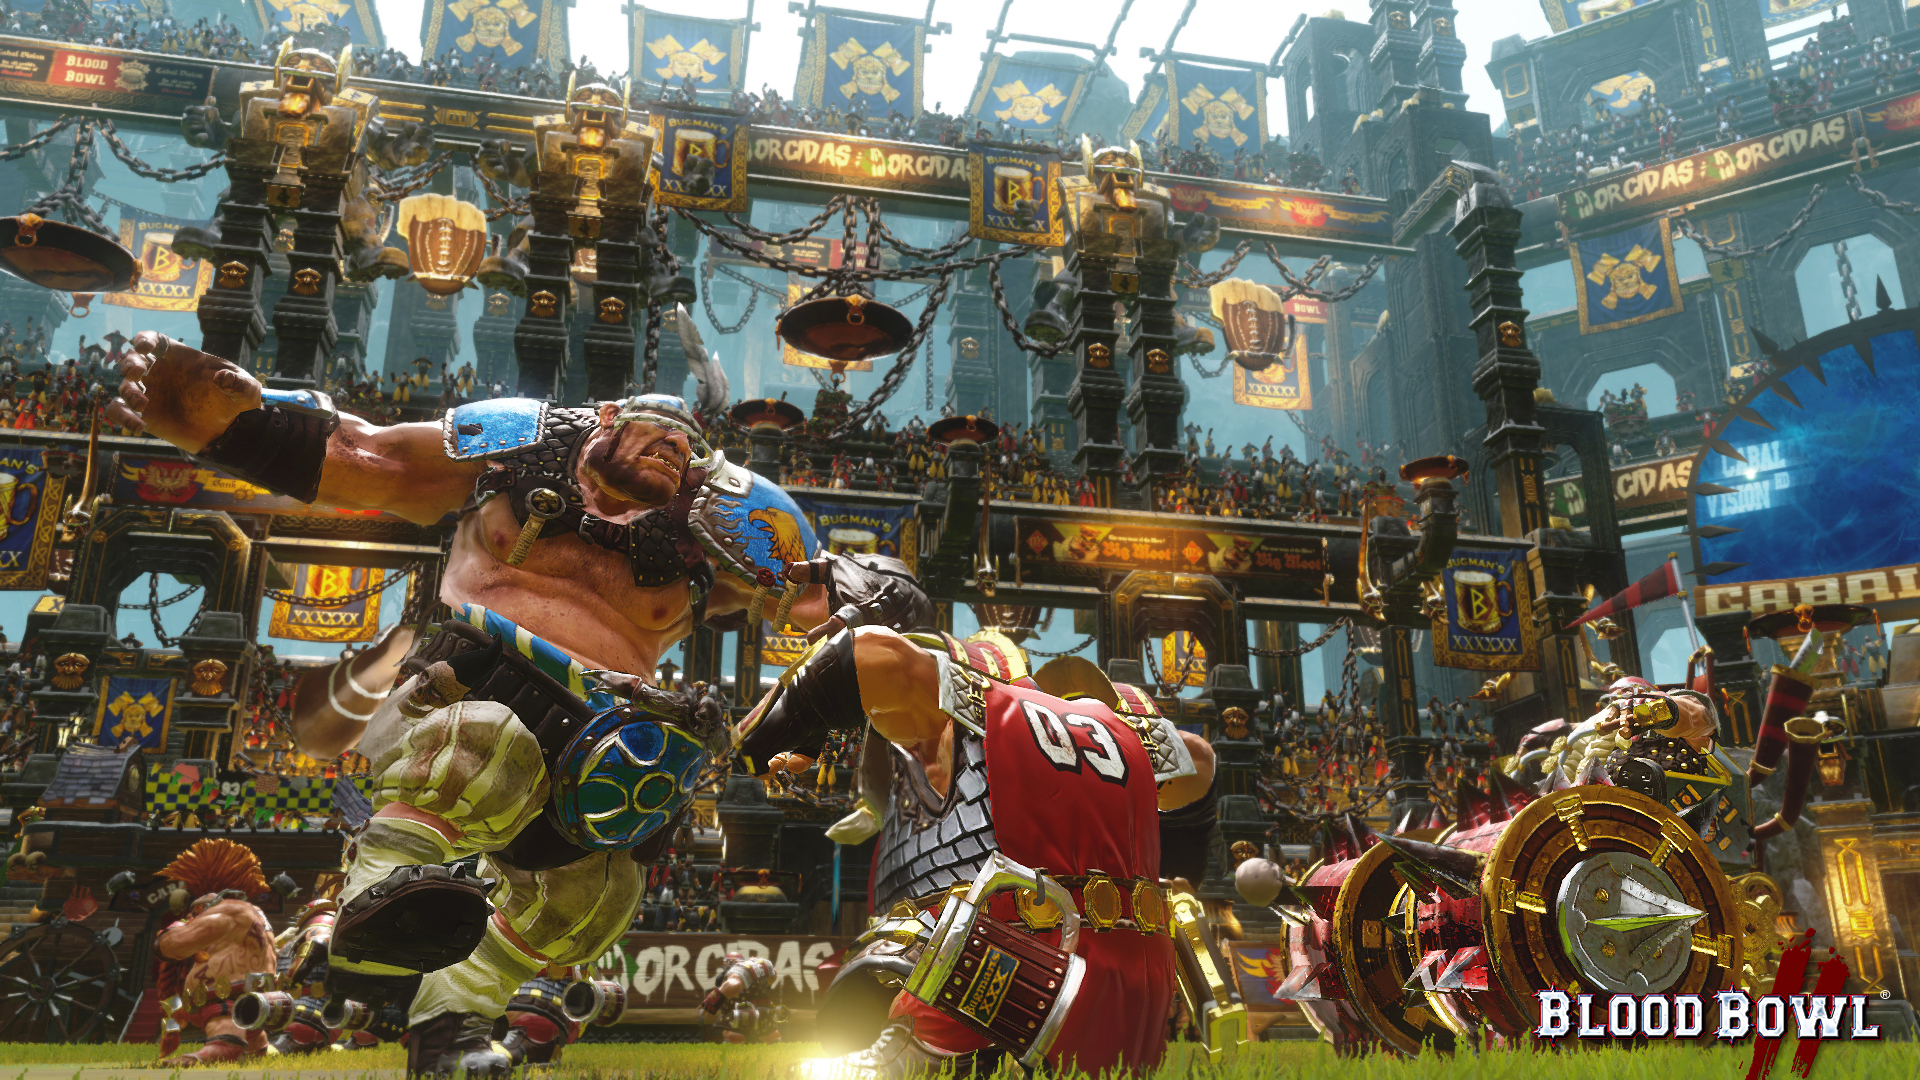 Blood bowl 2 steam key for pc and mac buy now.